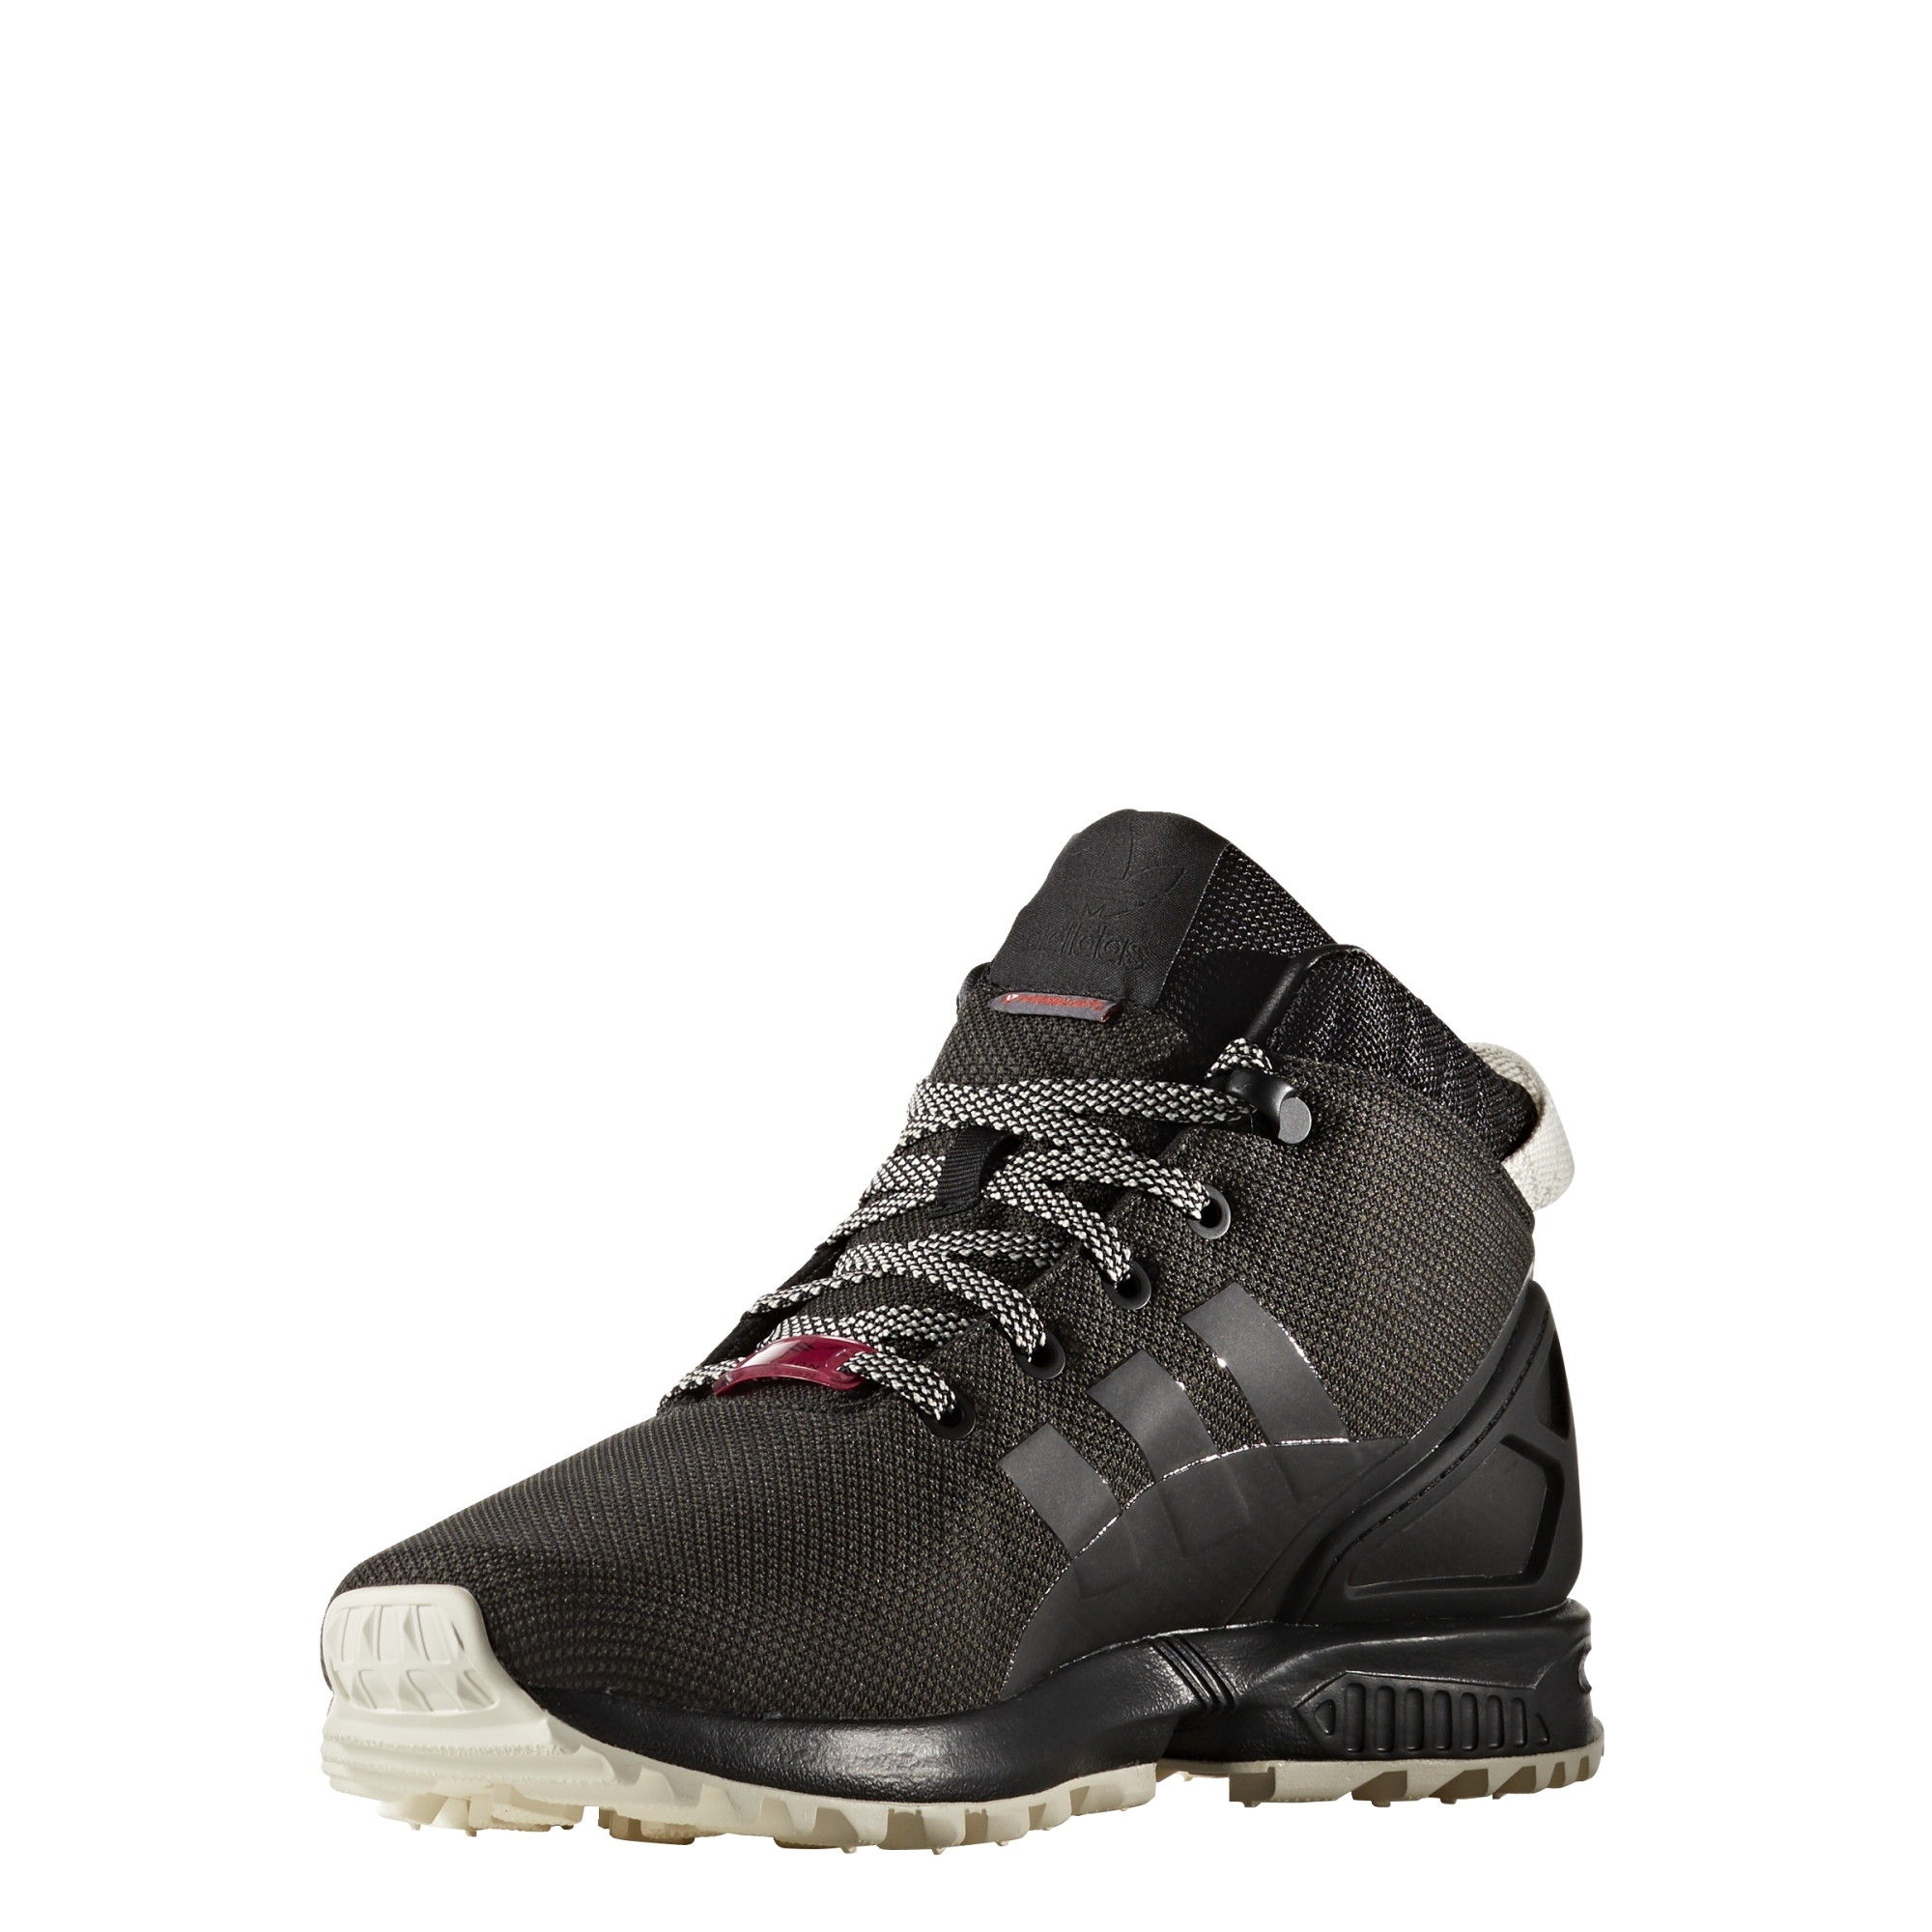 release date daac4 73e1e ... buty adidas ZX Flux 5 8 Trail Shoes S79741 ...